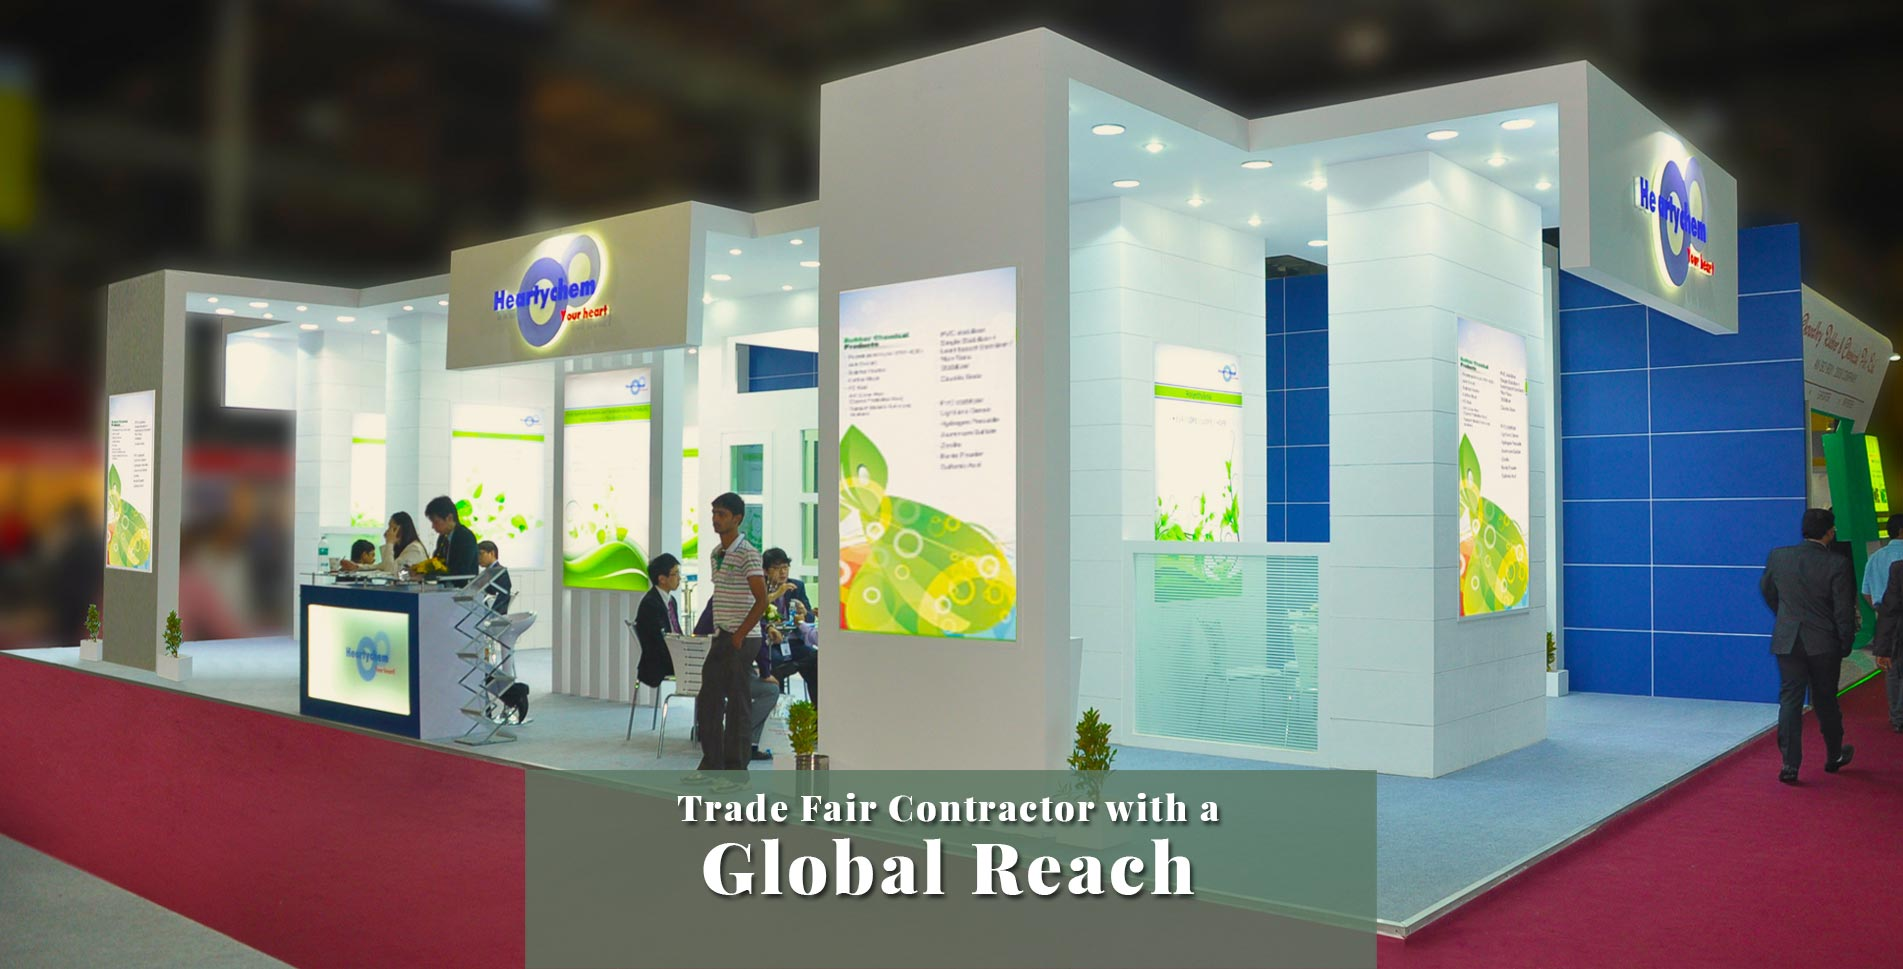 Trade Fair Contractor with a Global Reach